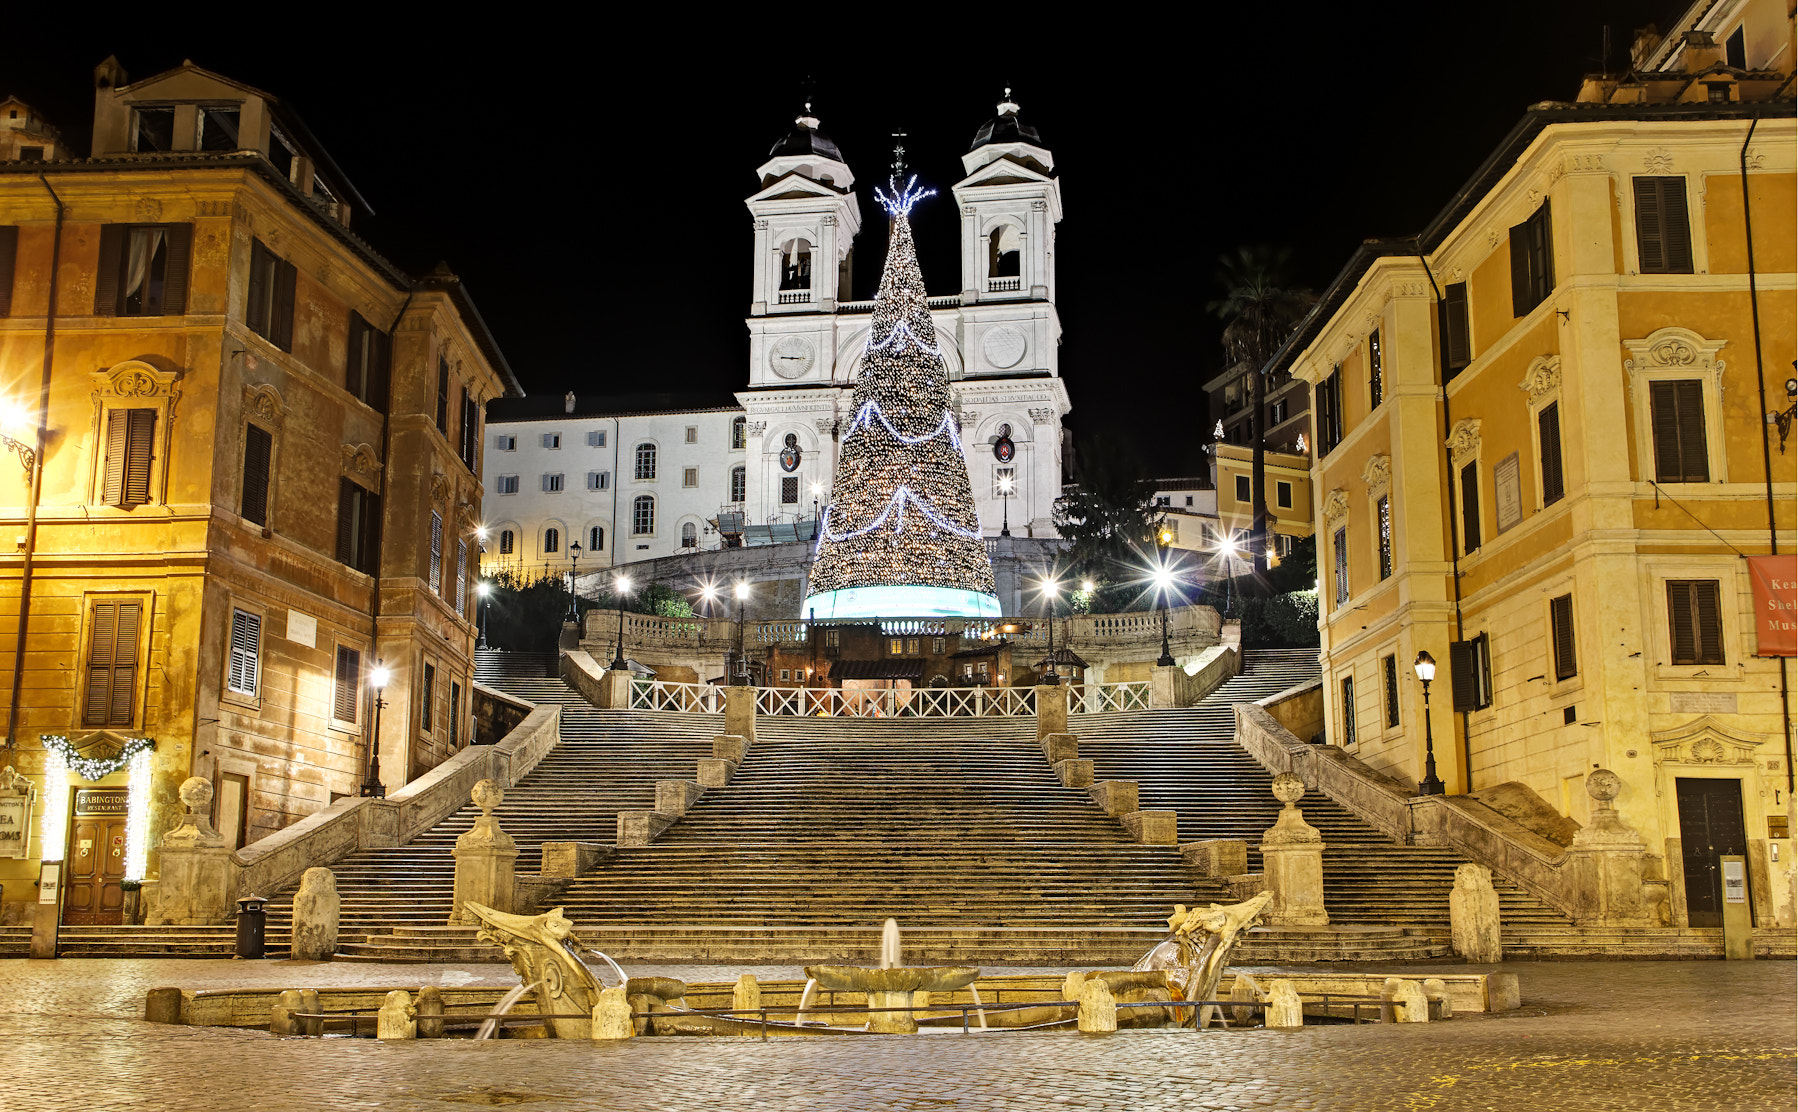 Photograph Trinita' dei Monti by Stefano Di Chiara on 500px